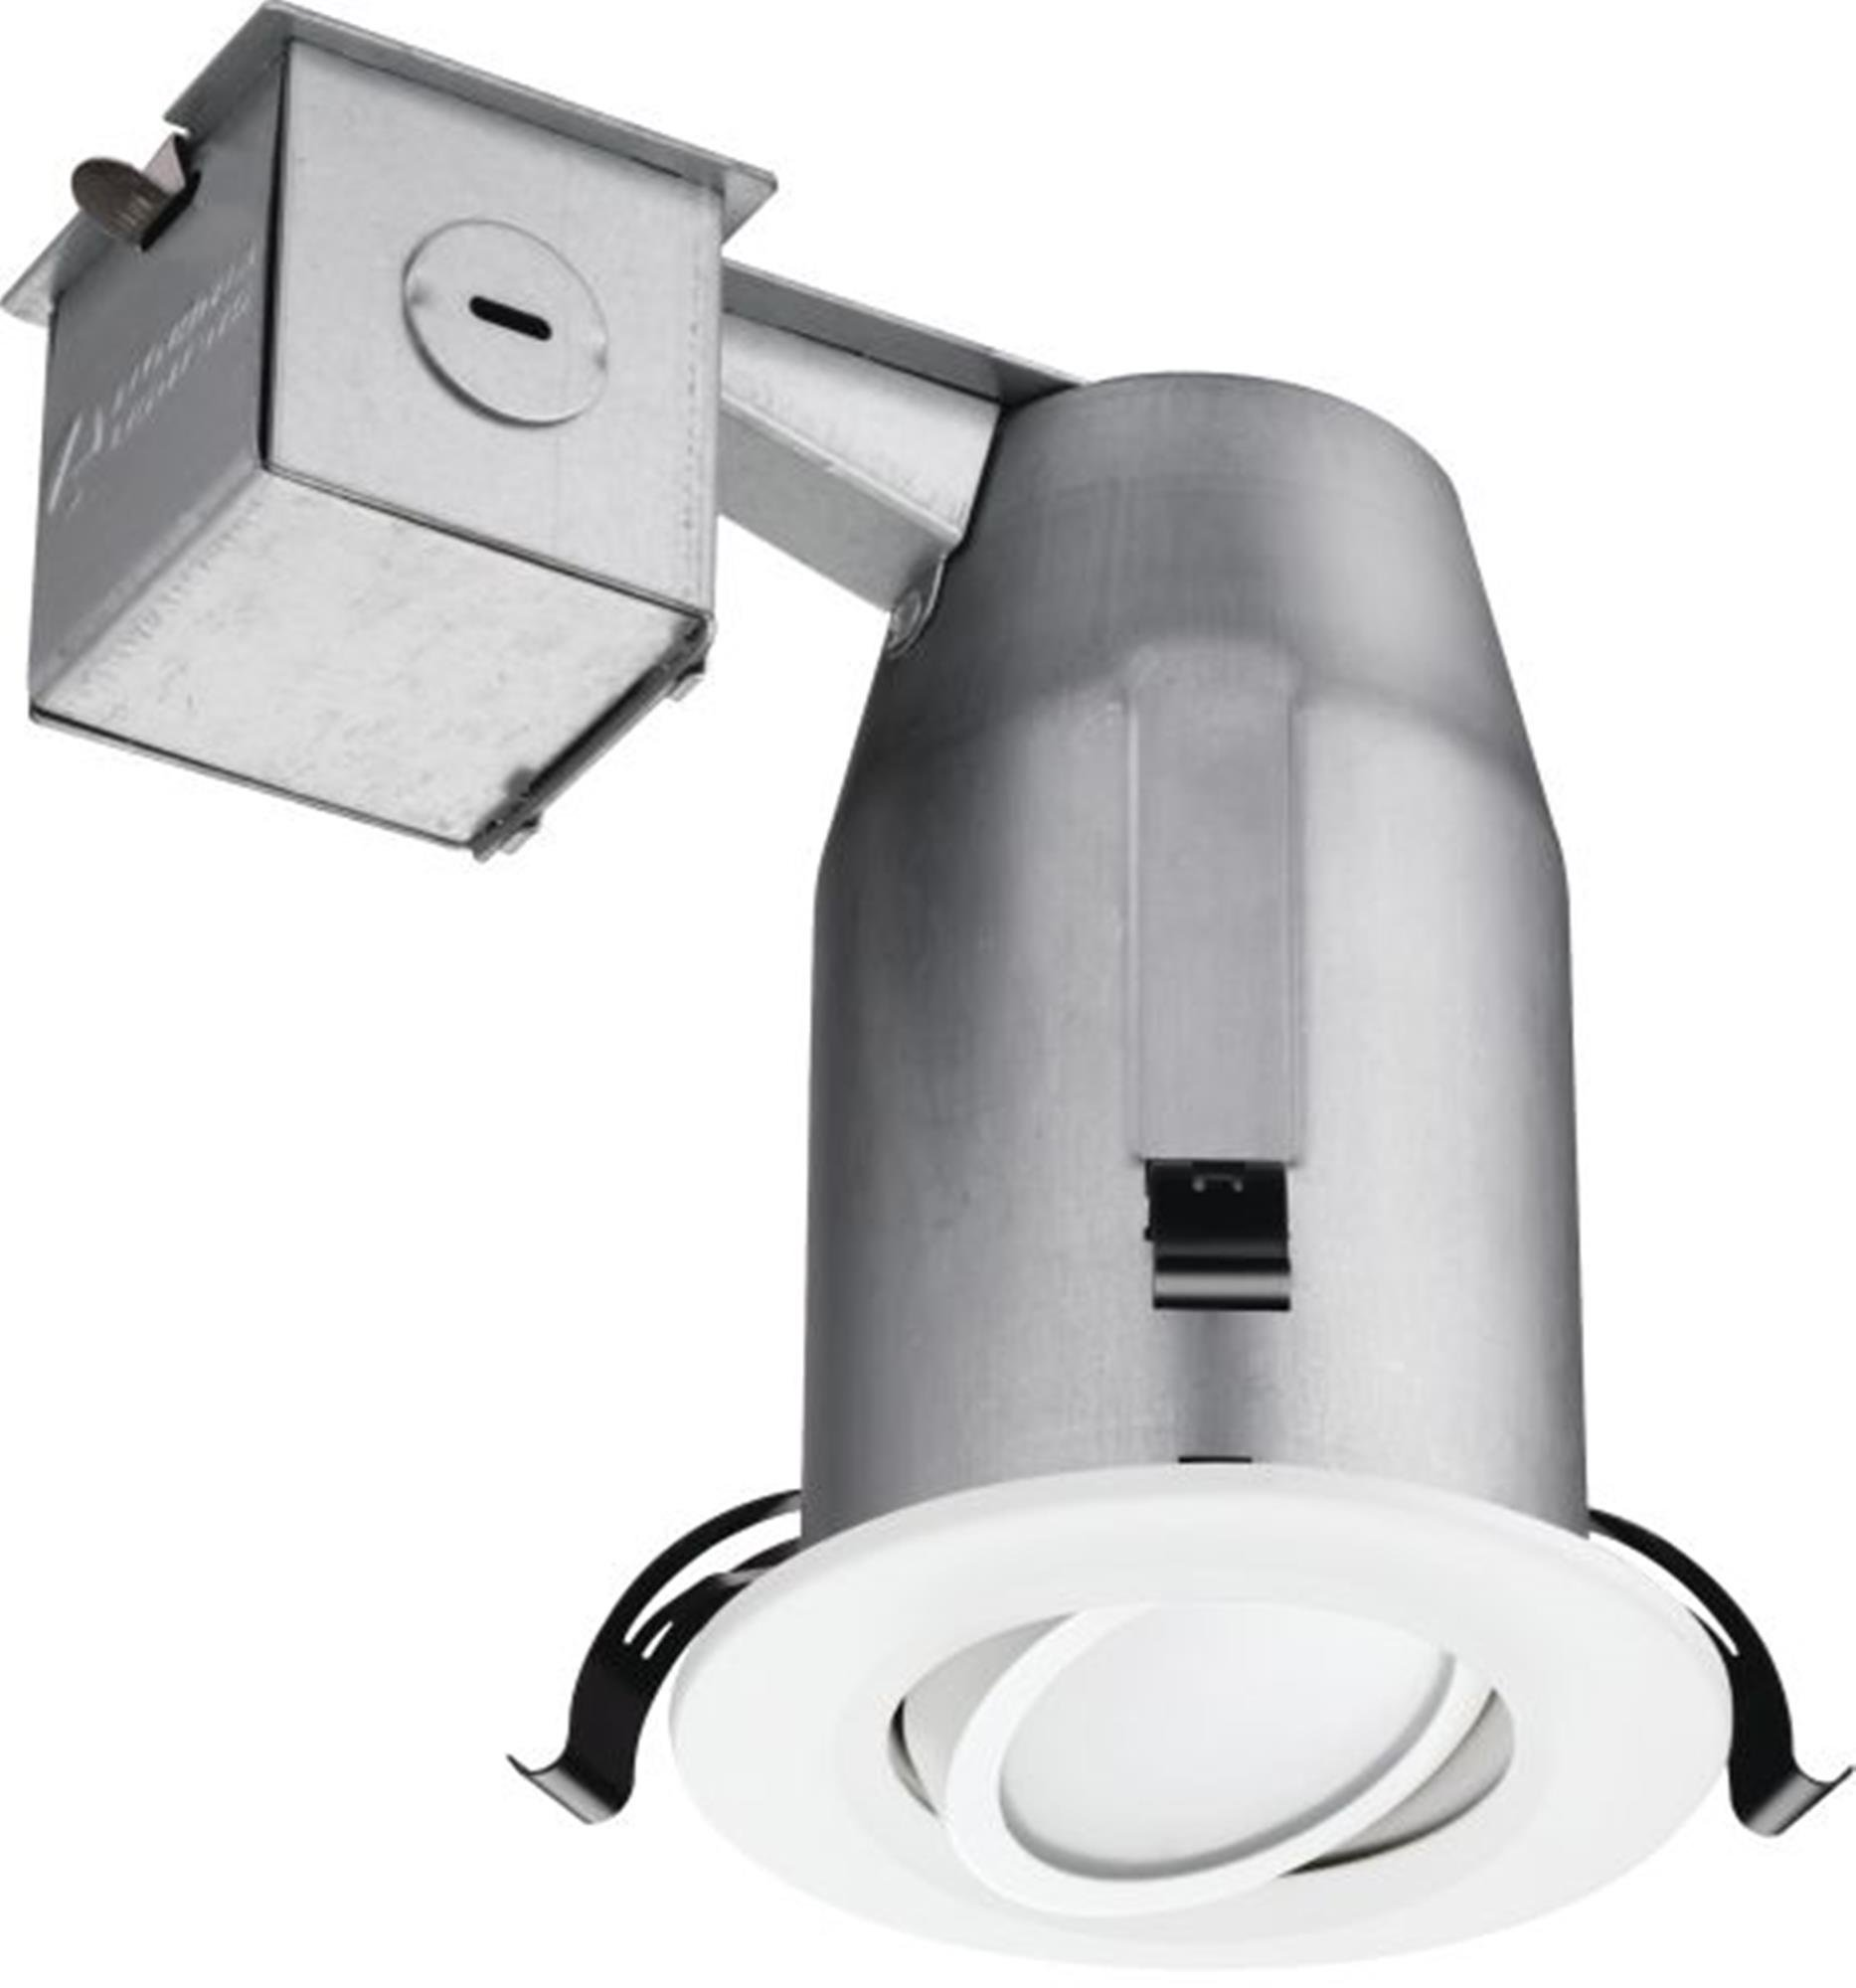 Lithonia Lighting LK3GMW LED LPI M6 3 Inch Gimbal Kit with LED Lamp Included in White